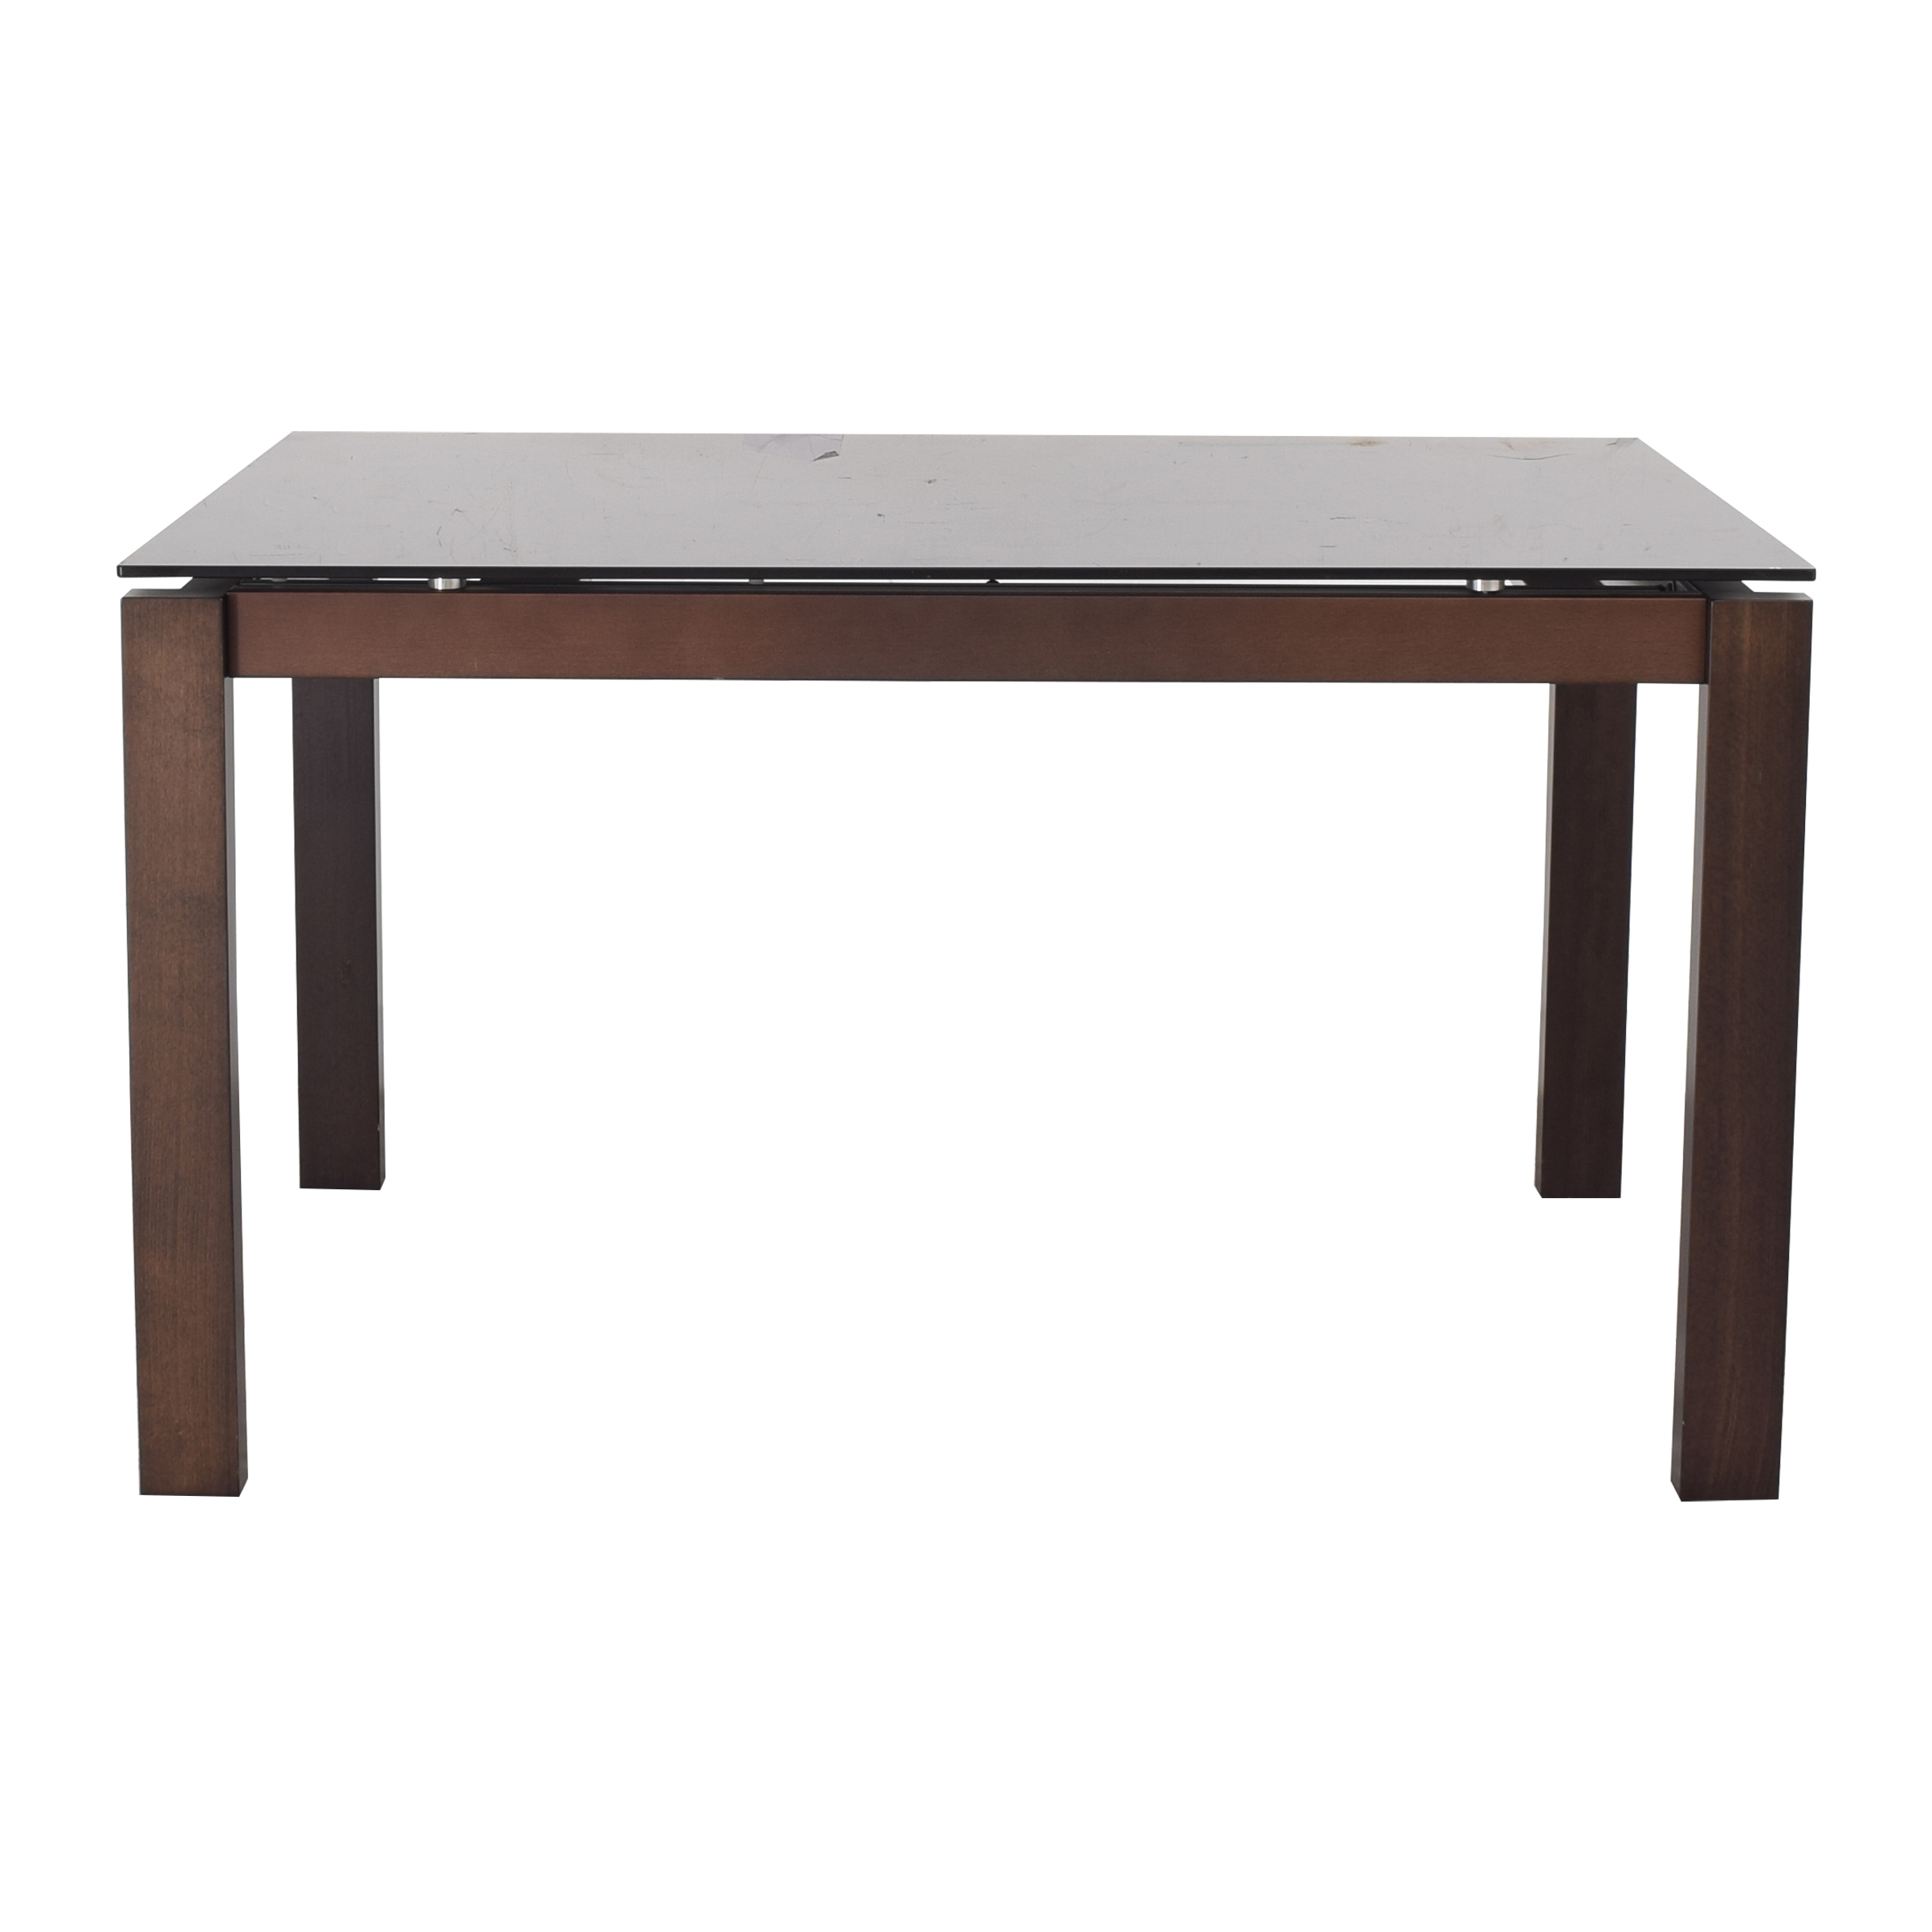 Calligaris Extending Dining Table sale